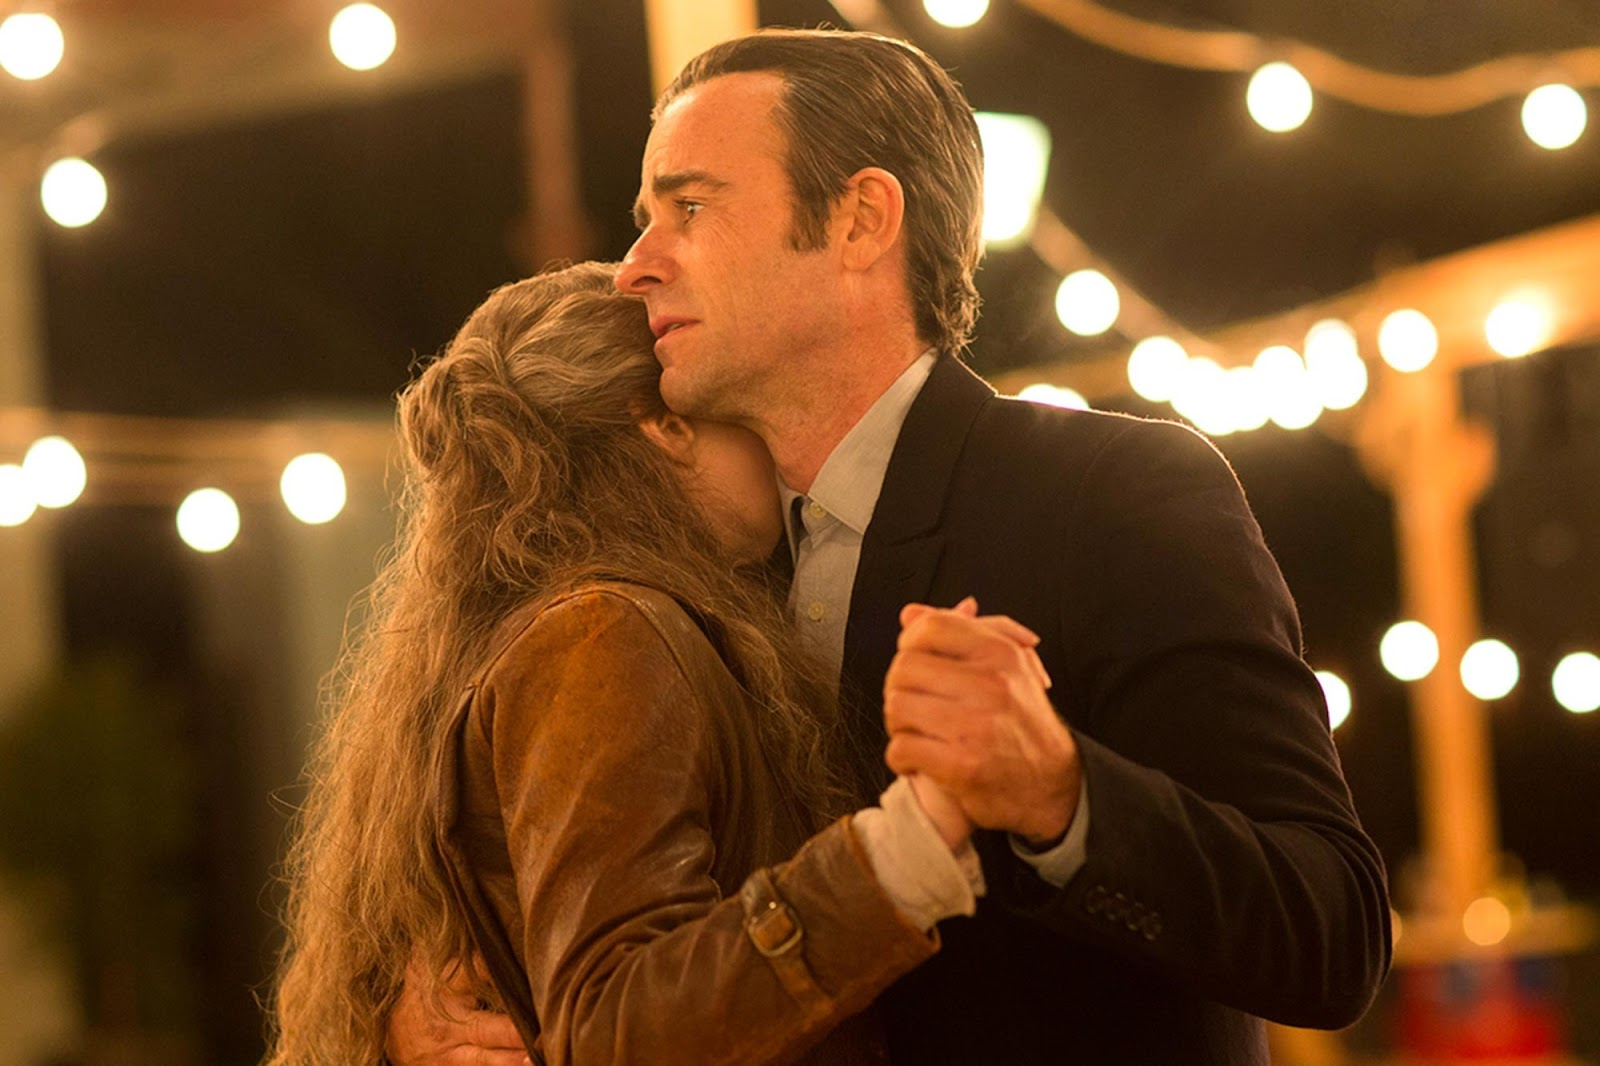 Kevin y Nora (The Leftovers)